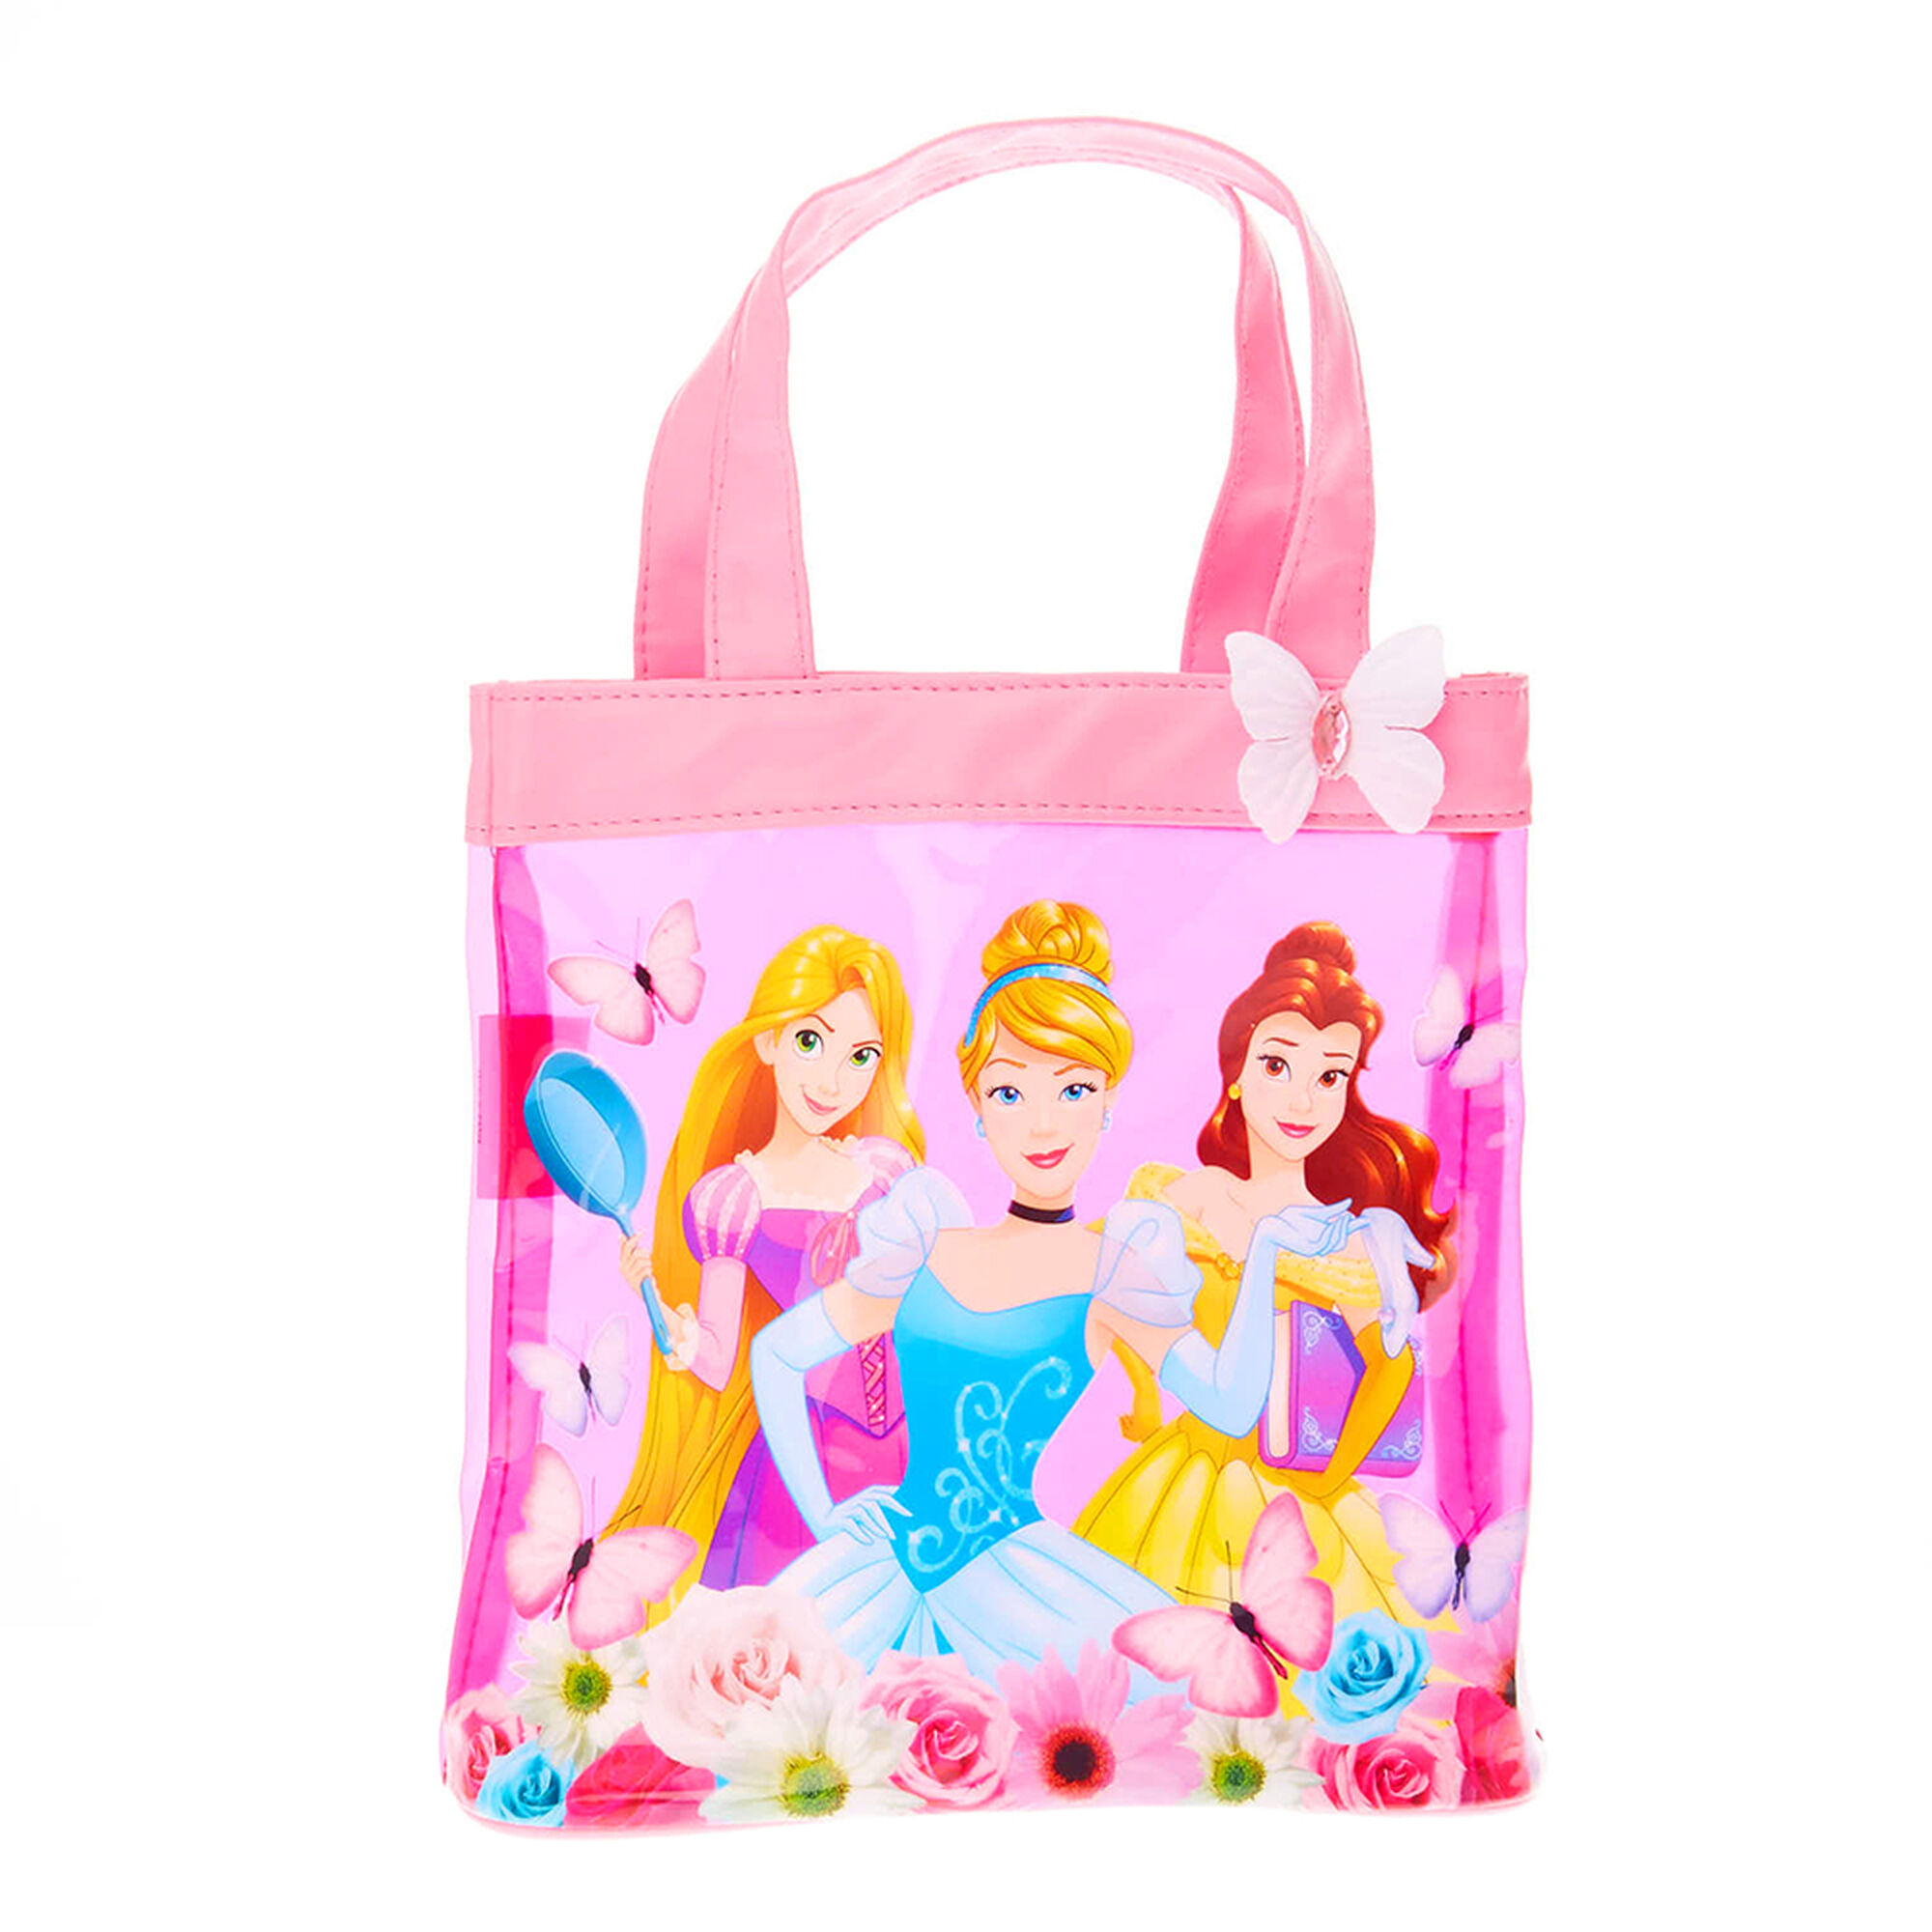 Disney Princess Jelly Tote Bag